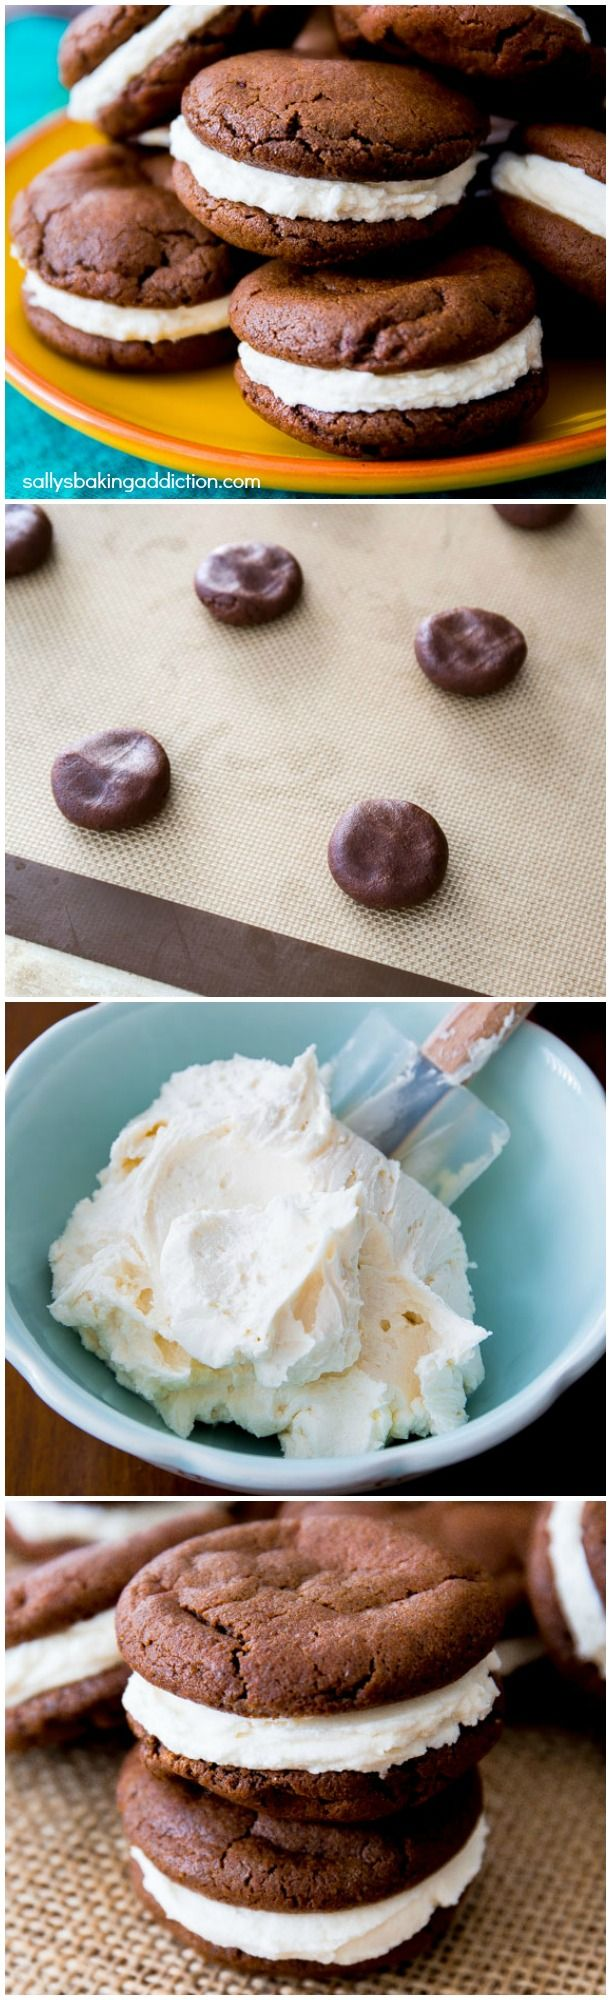 How to Make Homemade Oreos. It's so much easier than you think! And even better than store-bought if you ask me.